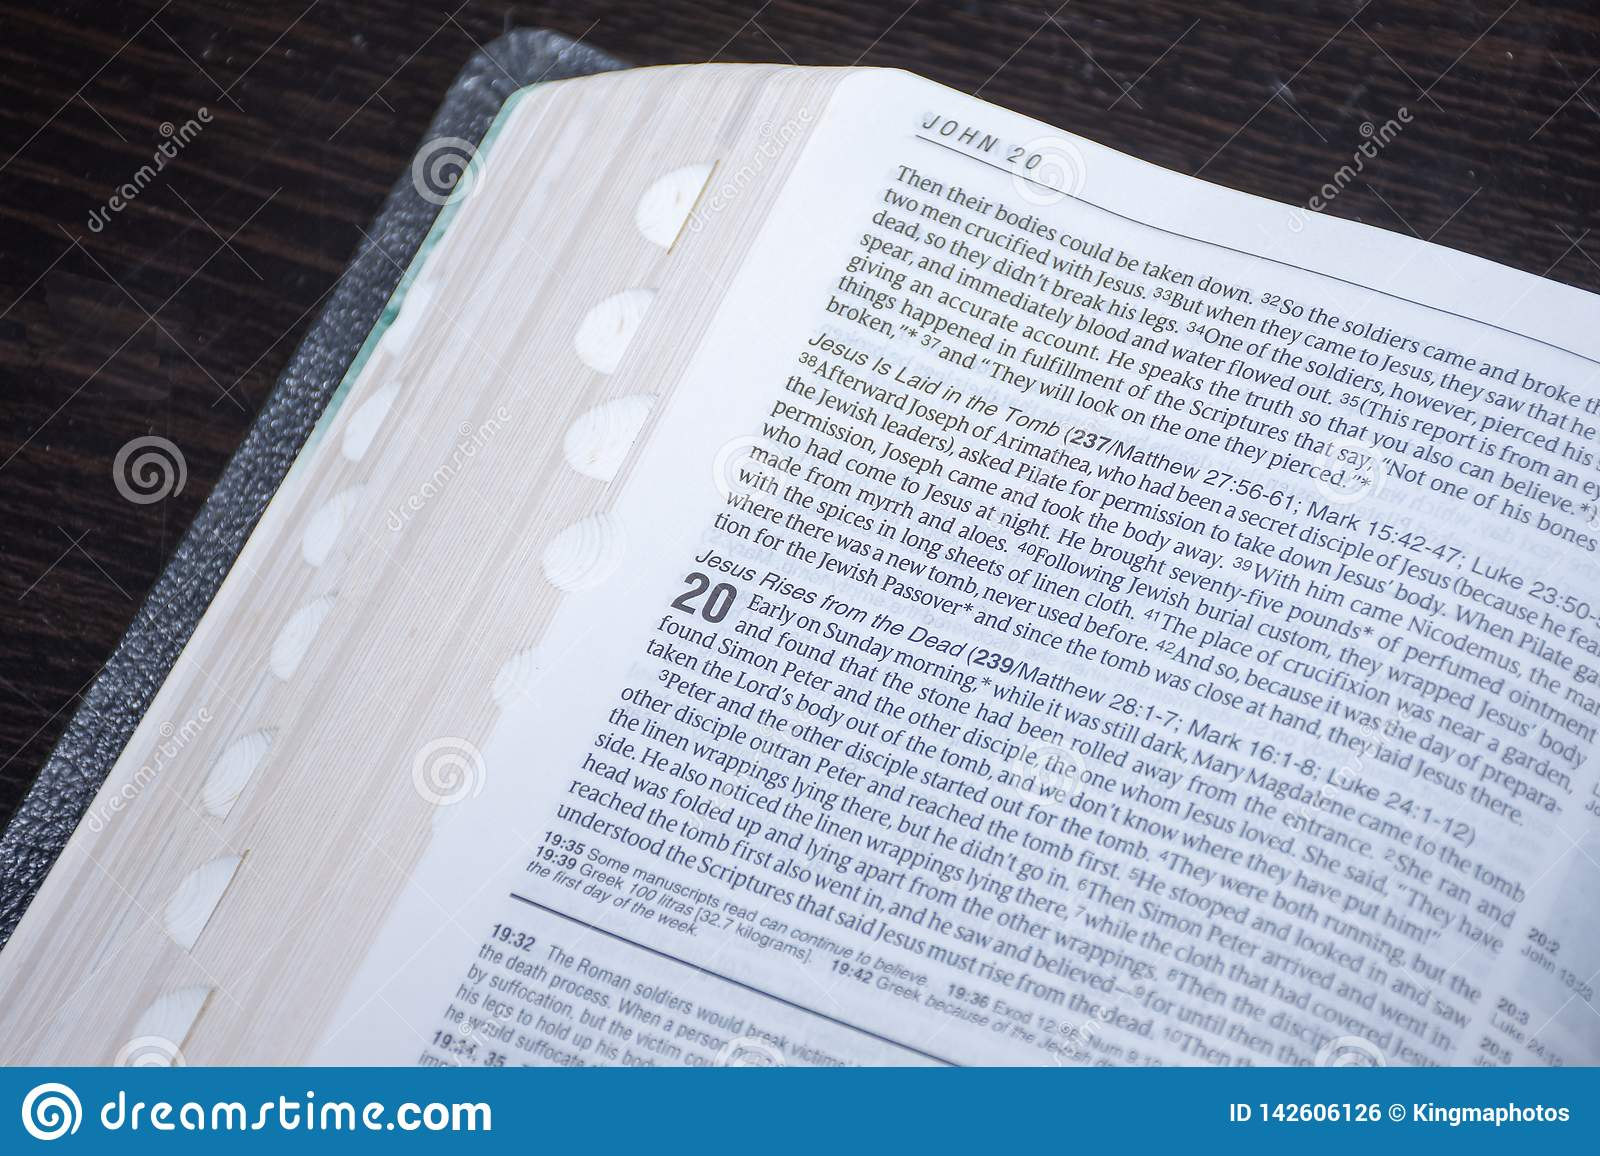 Easter Bible reading of the good news of the resurrection of Jesus Christ from the dead. John chapter 20